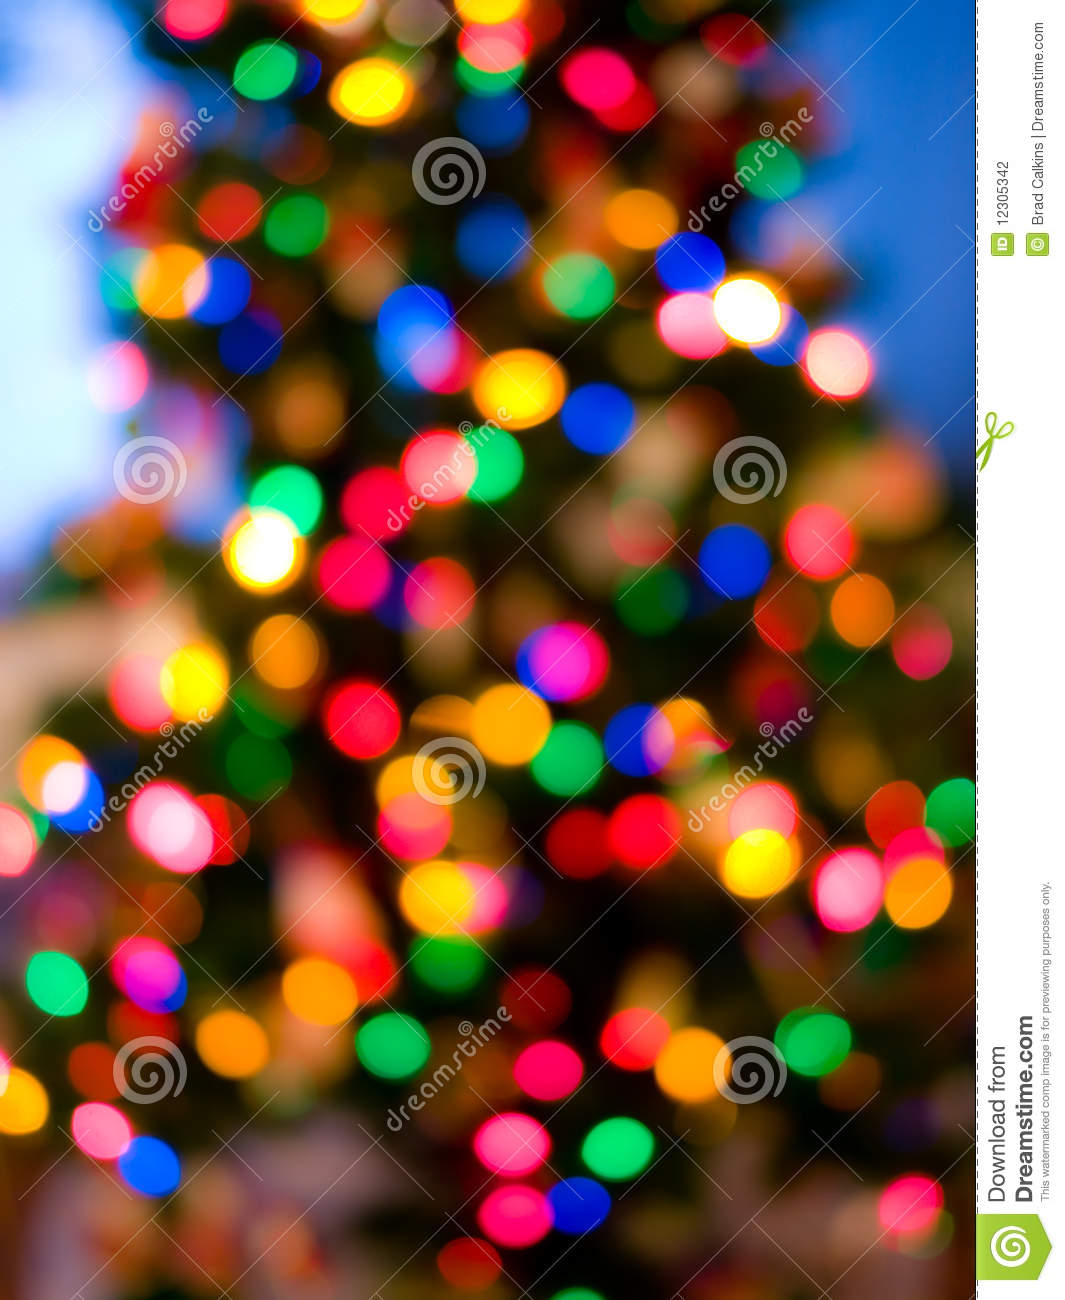 royalty free stock photo download christmas tree lights - Christmas Tree Lights